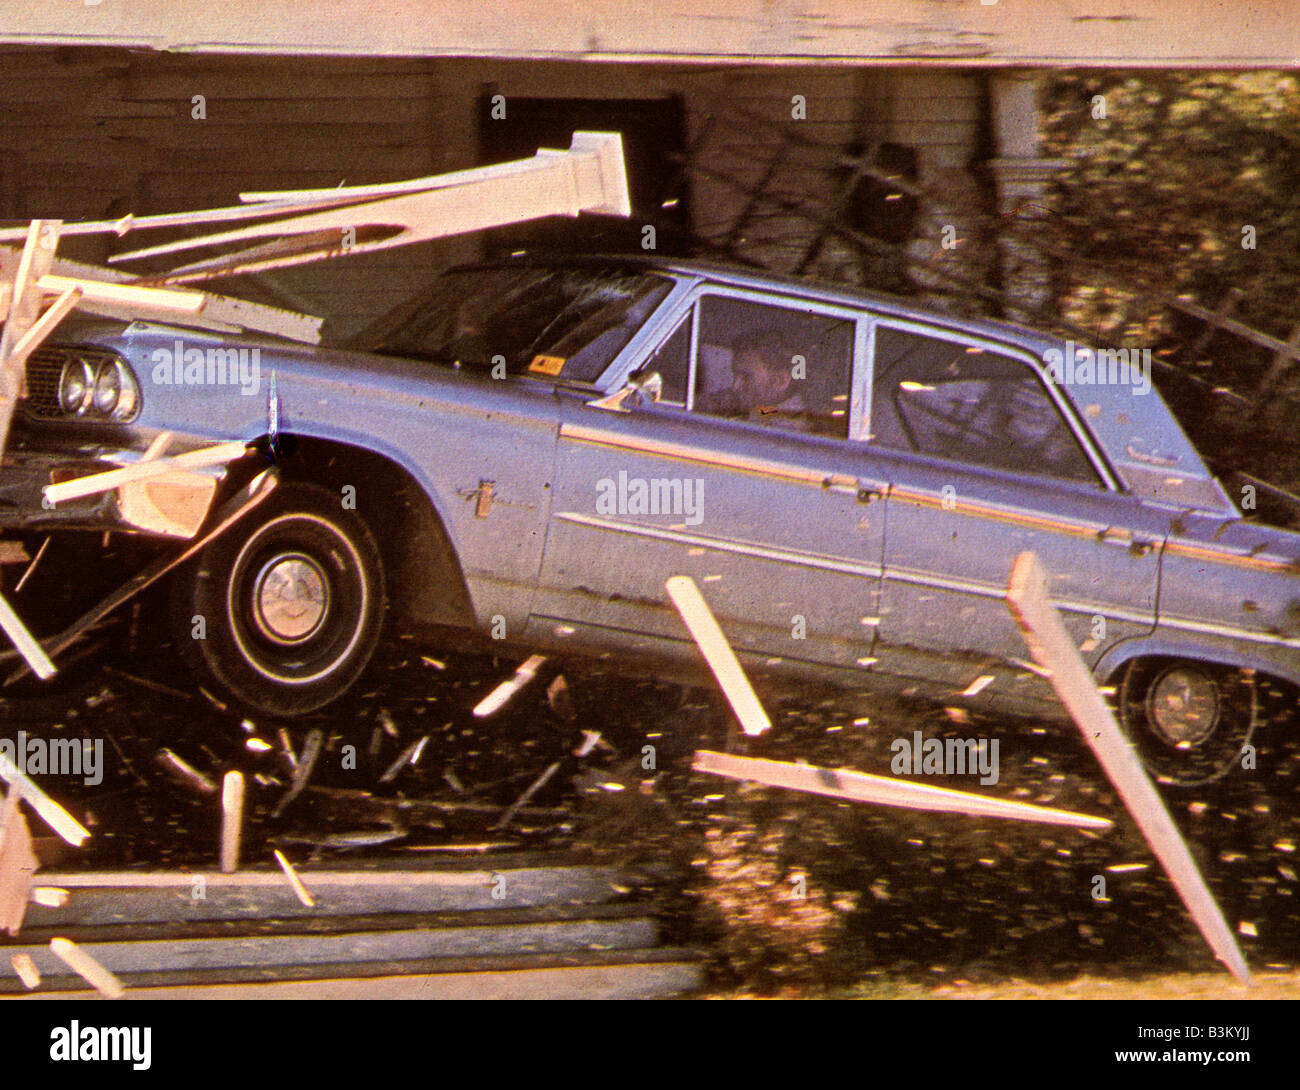 THE GETAWAY 1972   Solar/First Artists film with Steve McQueen - Stock Image